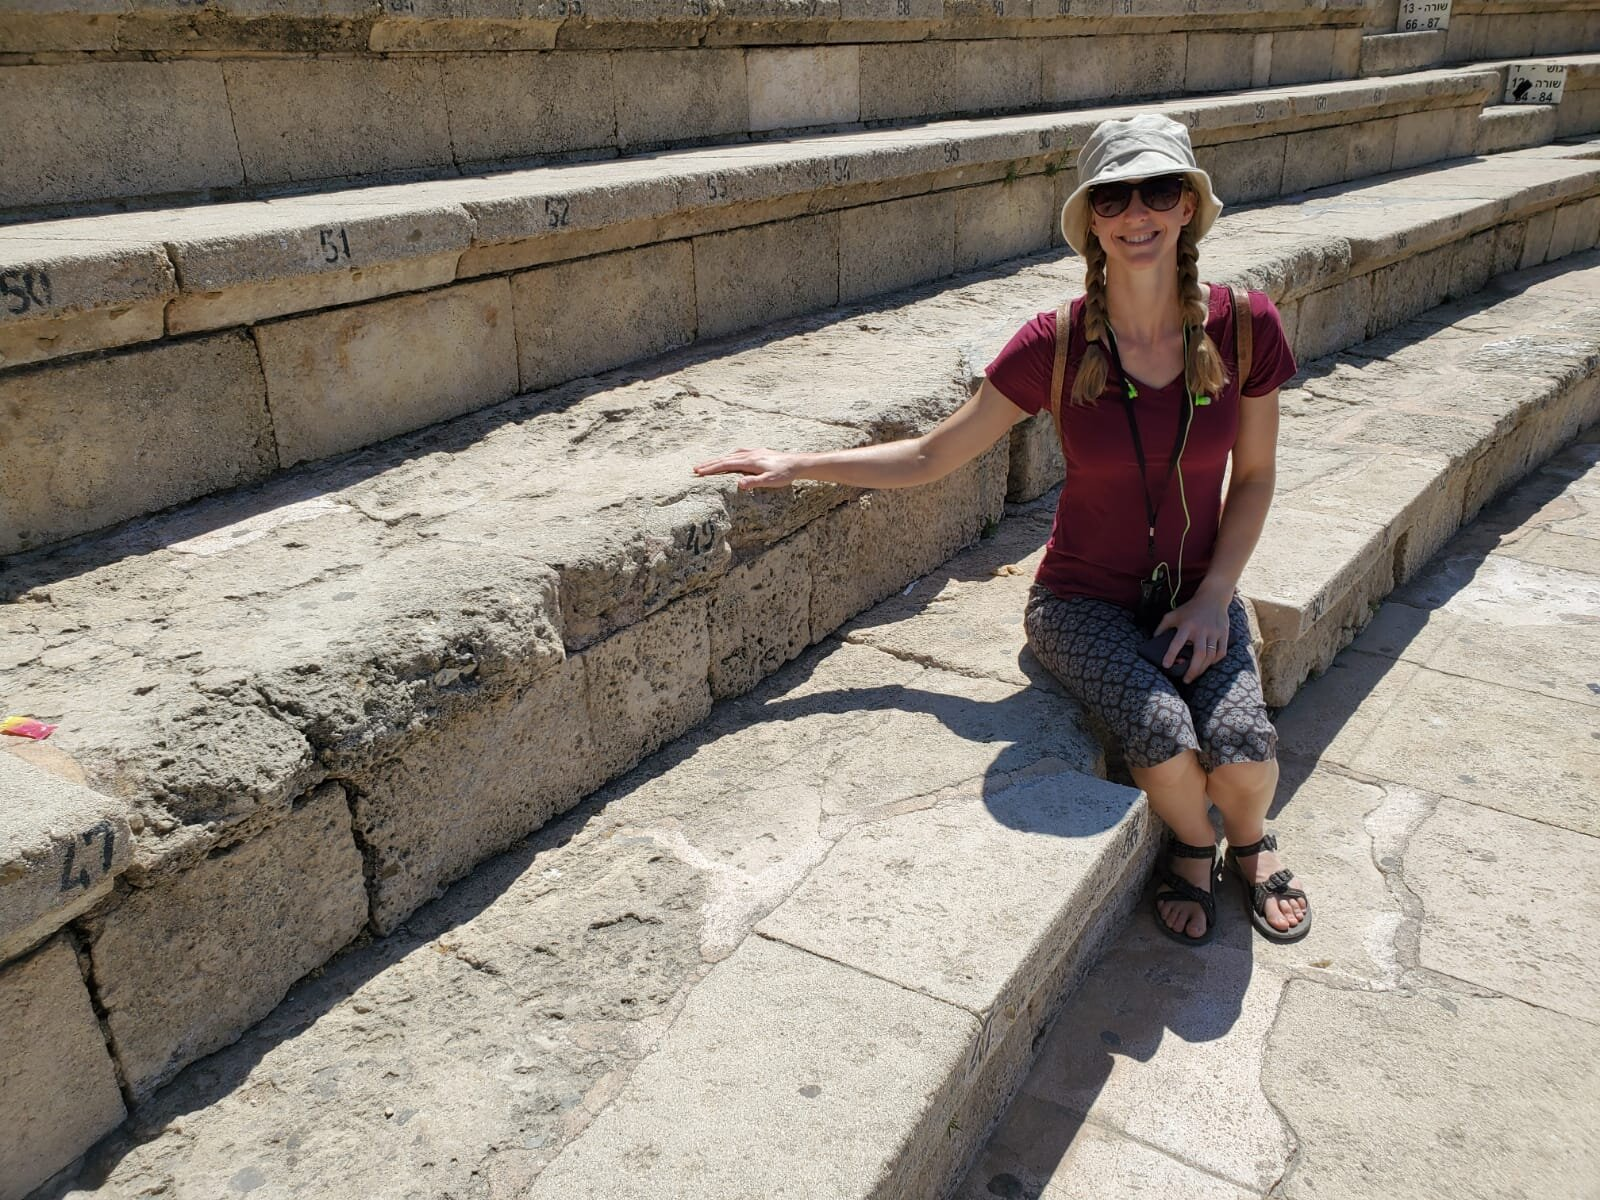 Touching original stones in the theater where the Angel of God struck down Herod Agrippa in Acts 12